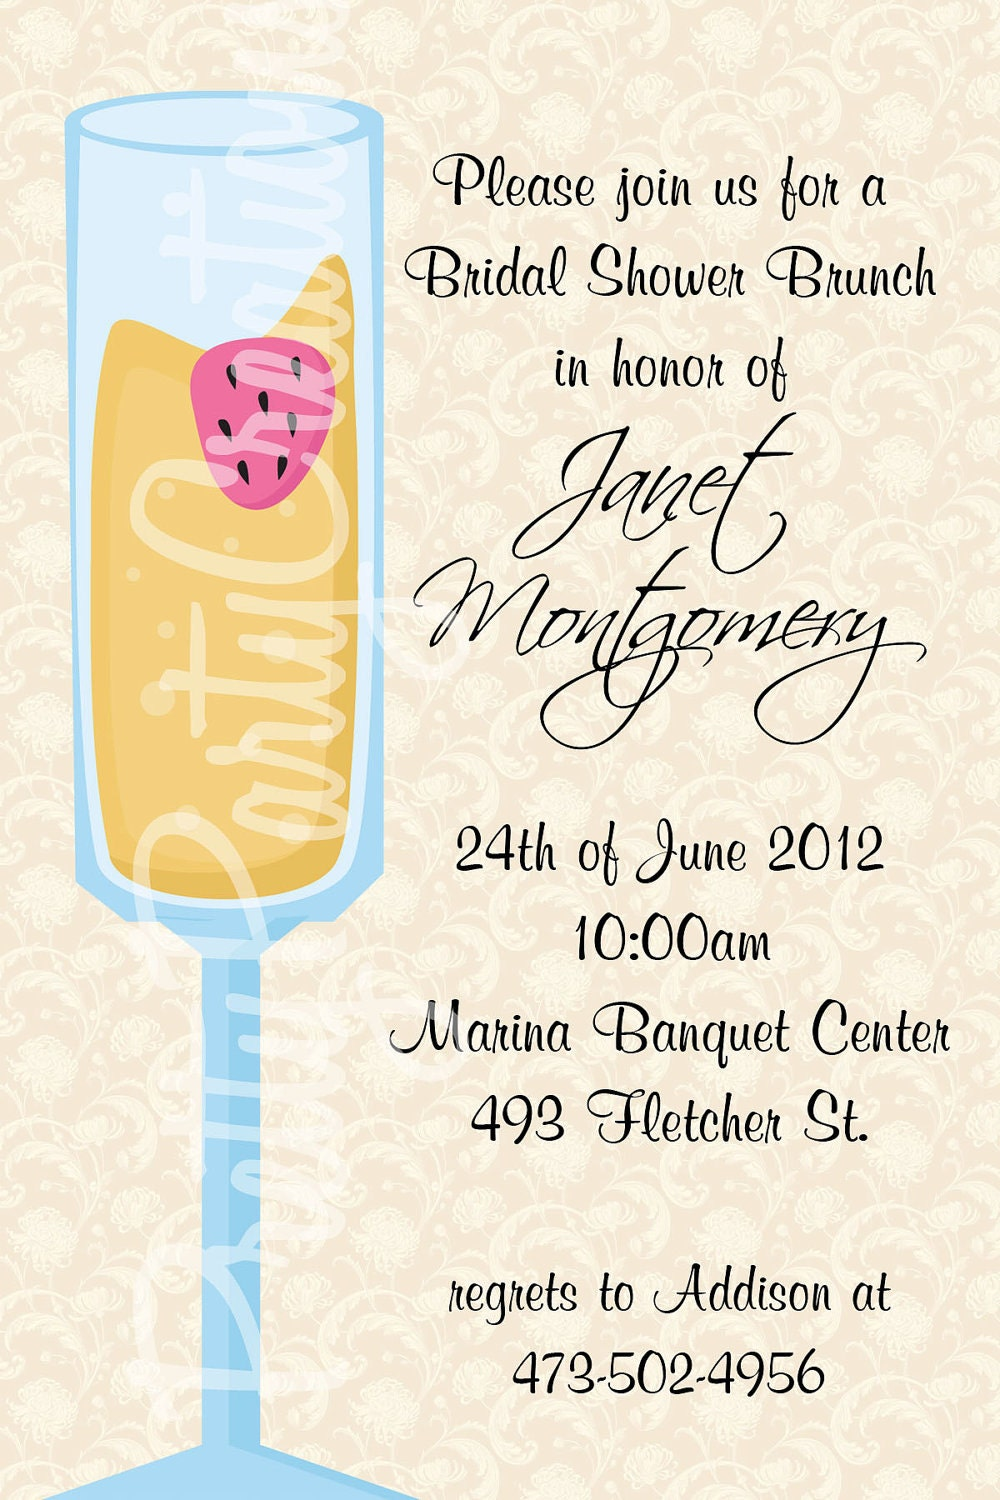 Birthday Brunch Invitation Wording Samples for nice invitation layout